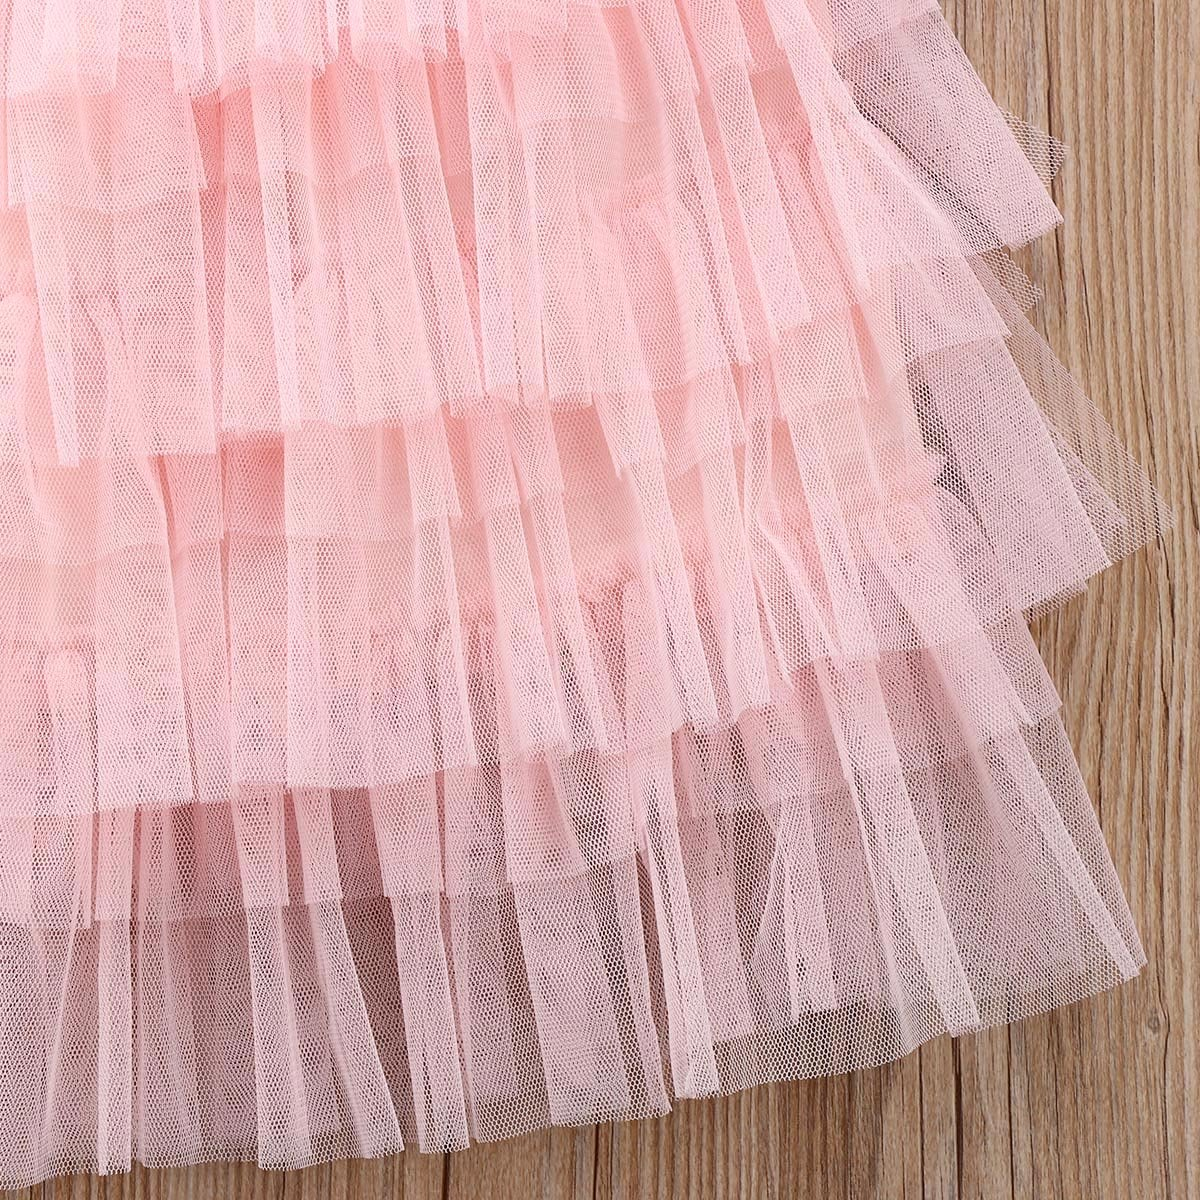 Toddler Baby Girl Tutu Lace Party Dress Flower Girl Dress Princess Dress Kids Girl Floral Dress Clothes